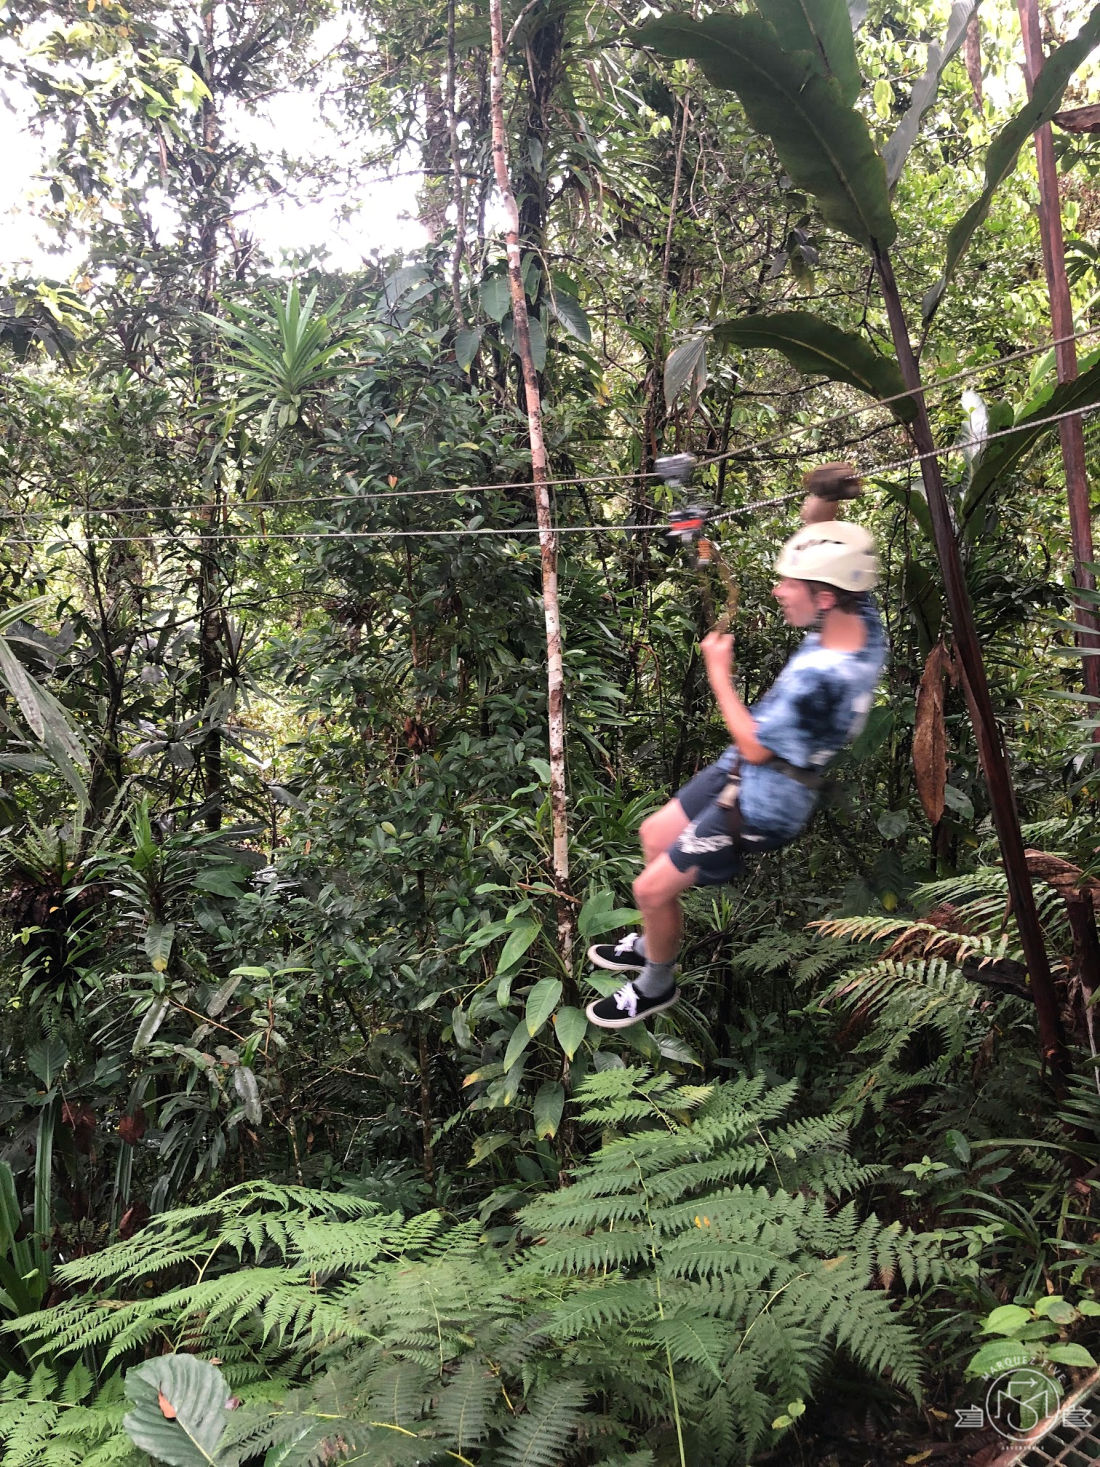 Zipping through the rainforest